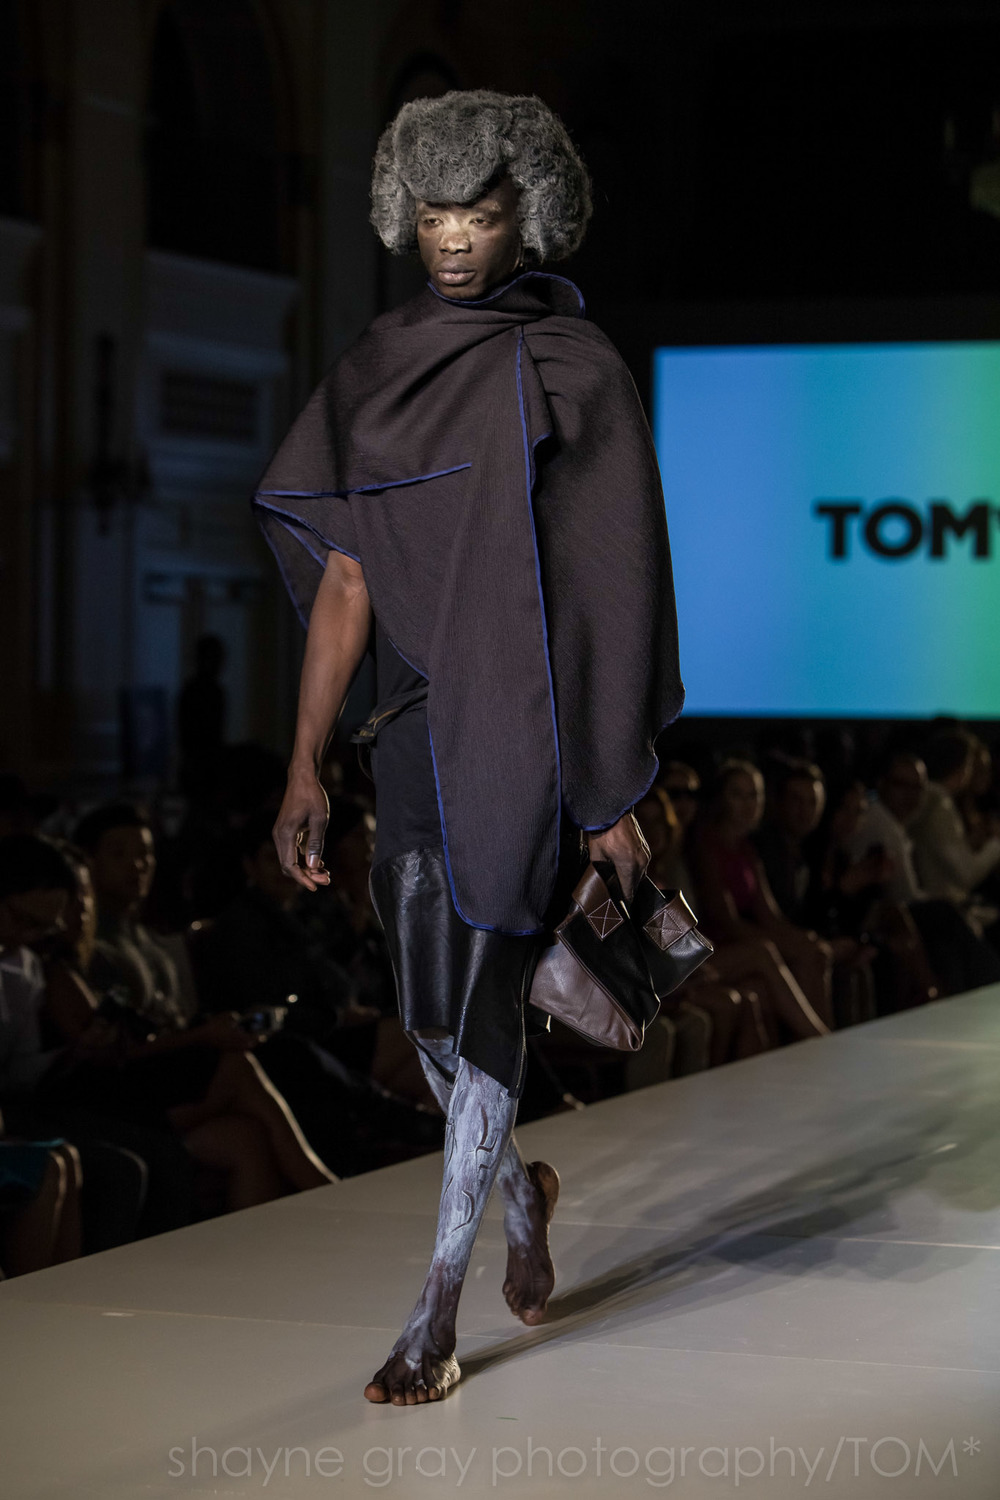 Shayne-Gray-Toronto-men's-fashion_week-TOM-jose-duran-7670.jpg